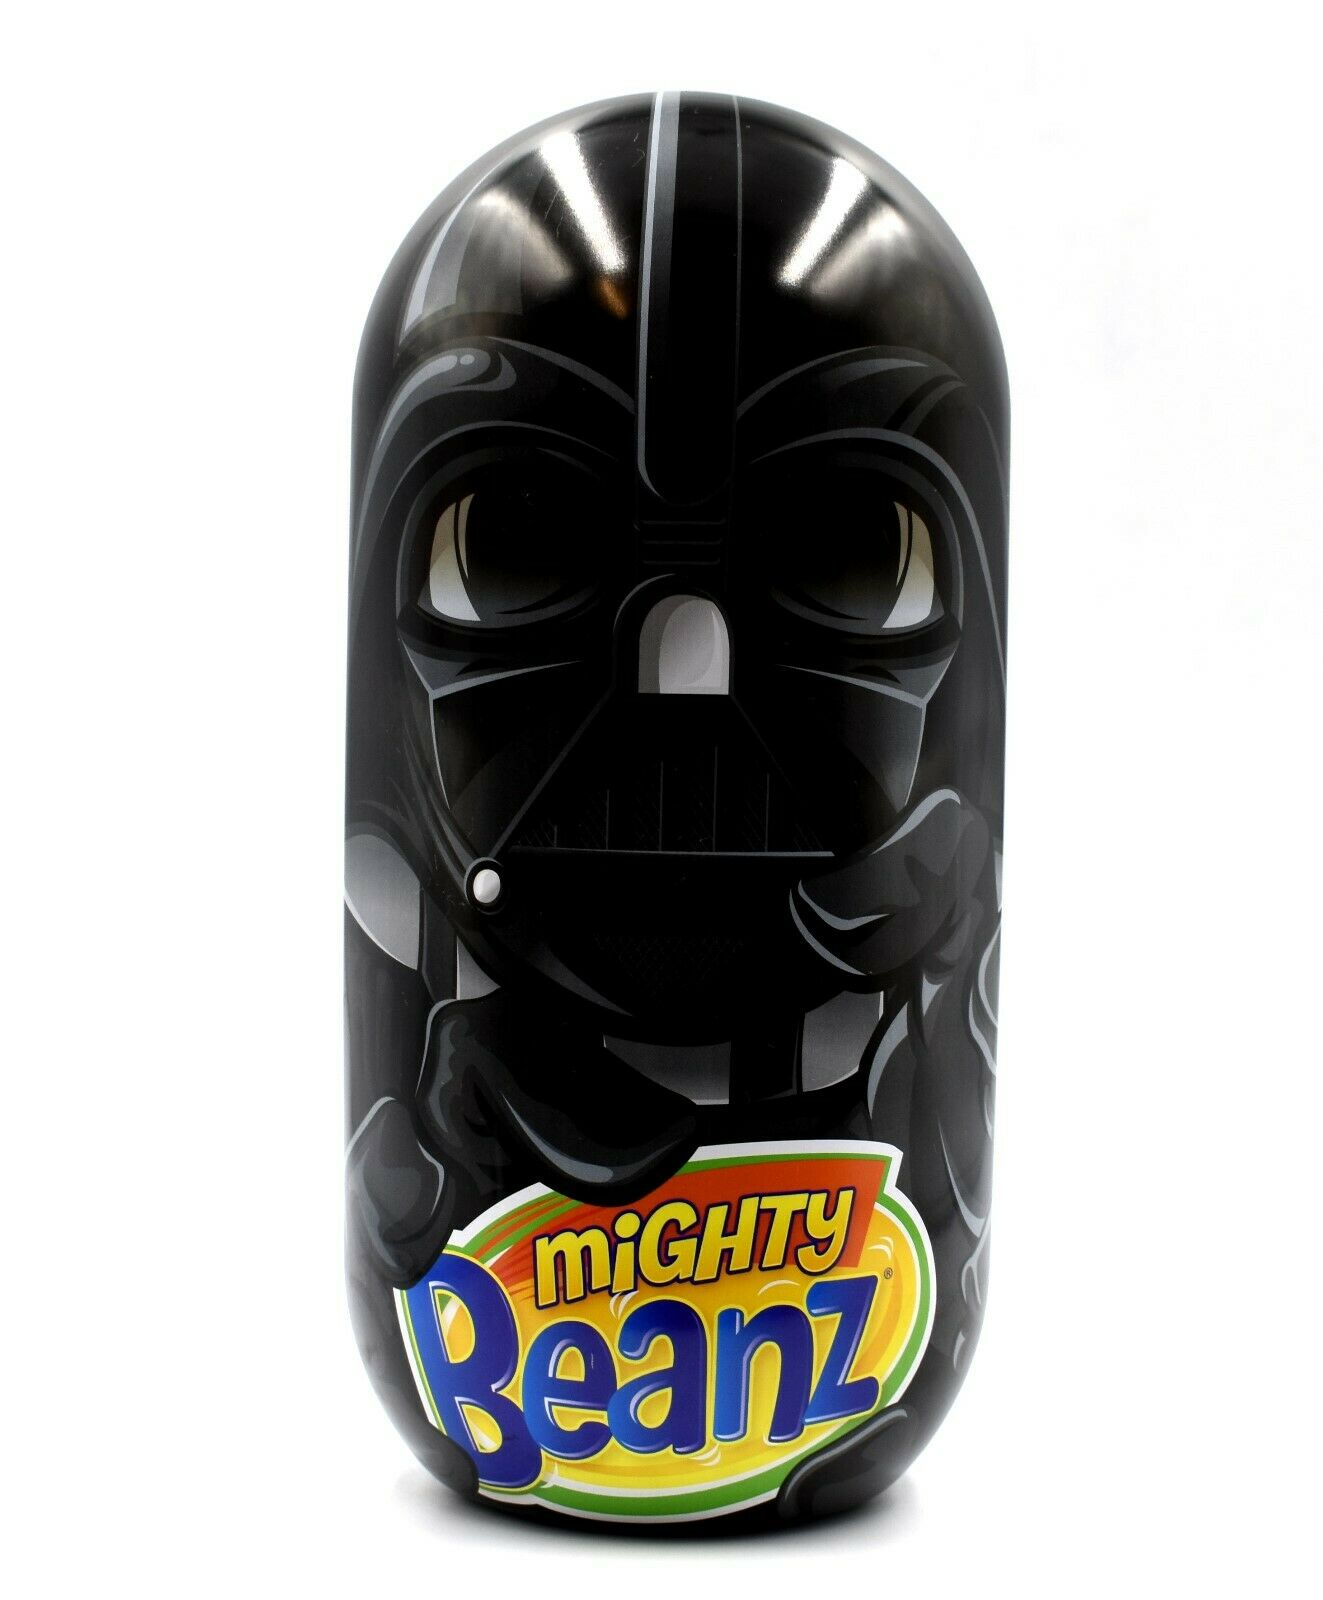 Stern Wars Mighty Beanz - Darth Vader Collector voiturery Fall with 41 Beanz